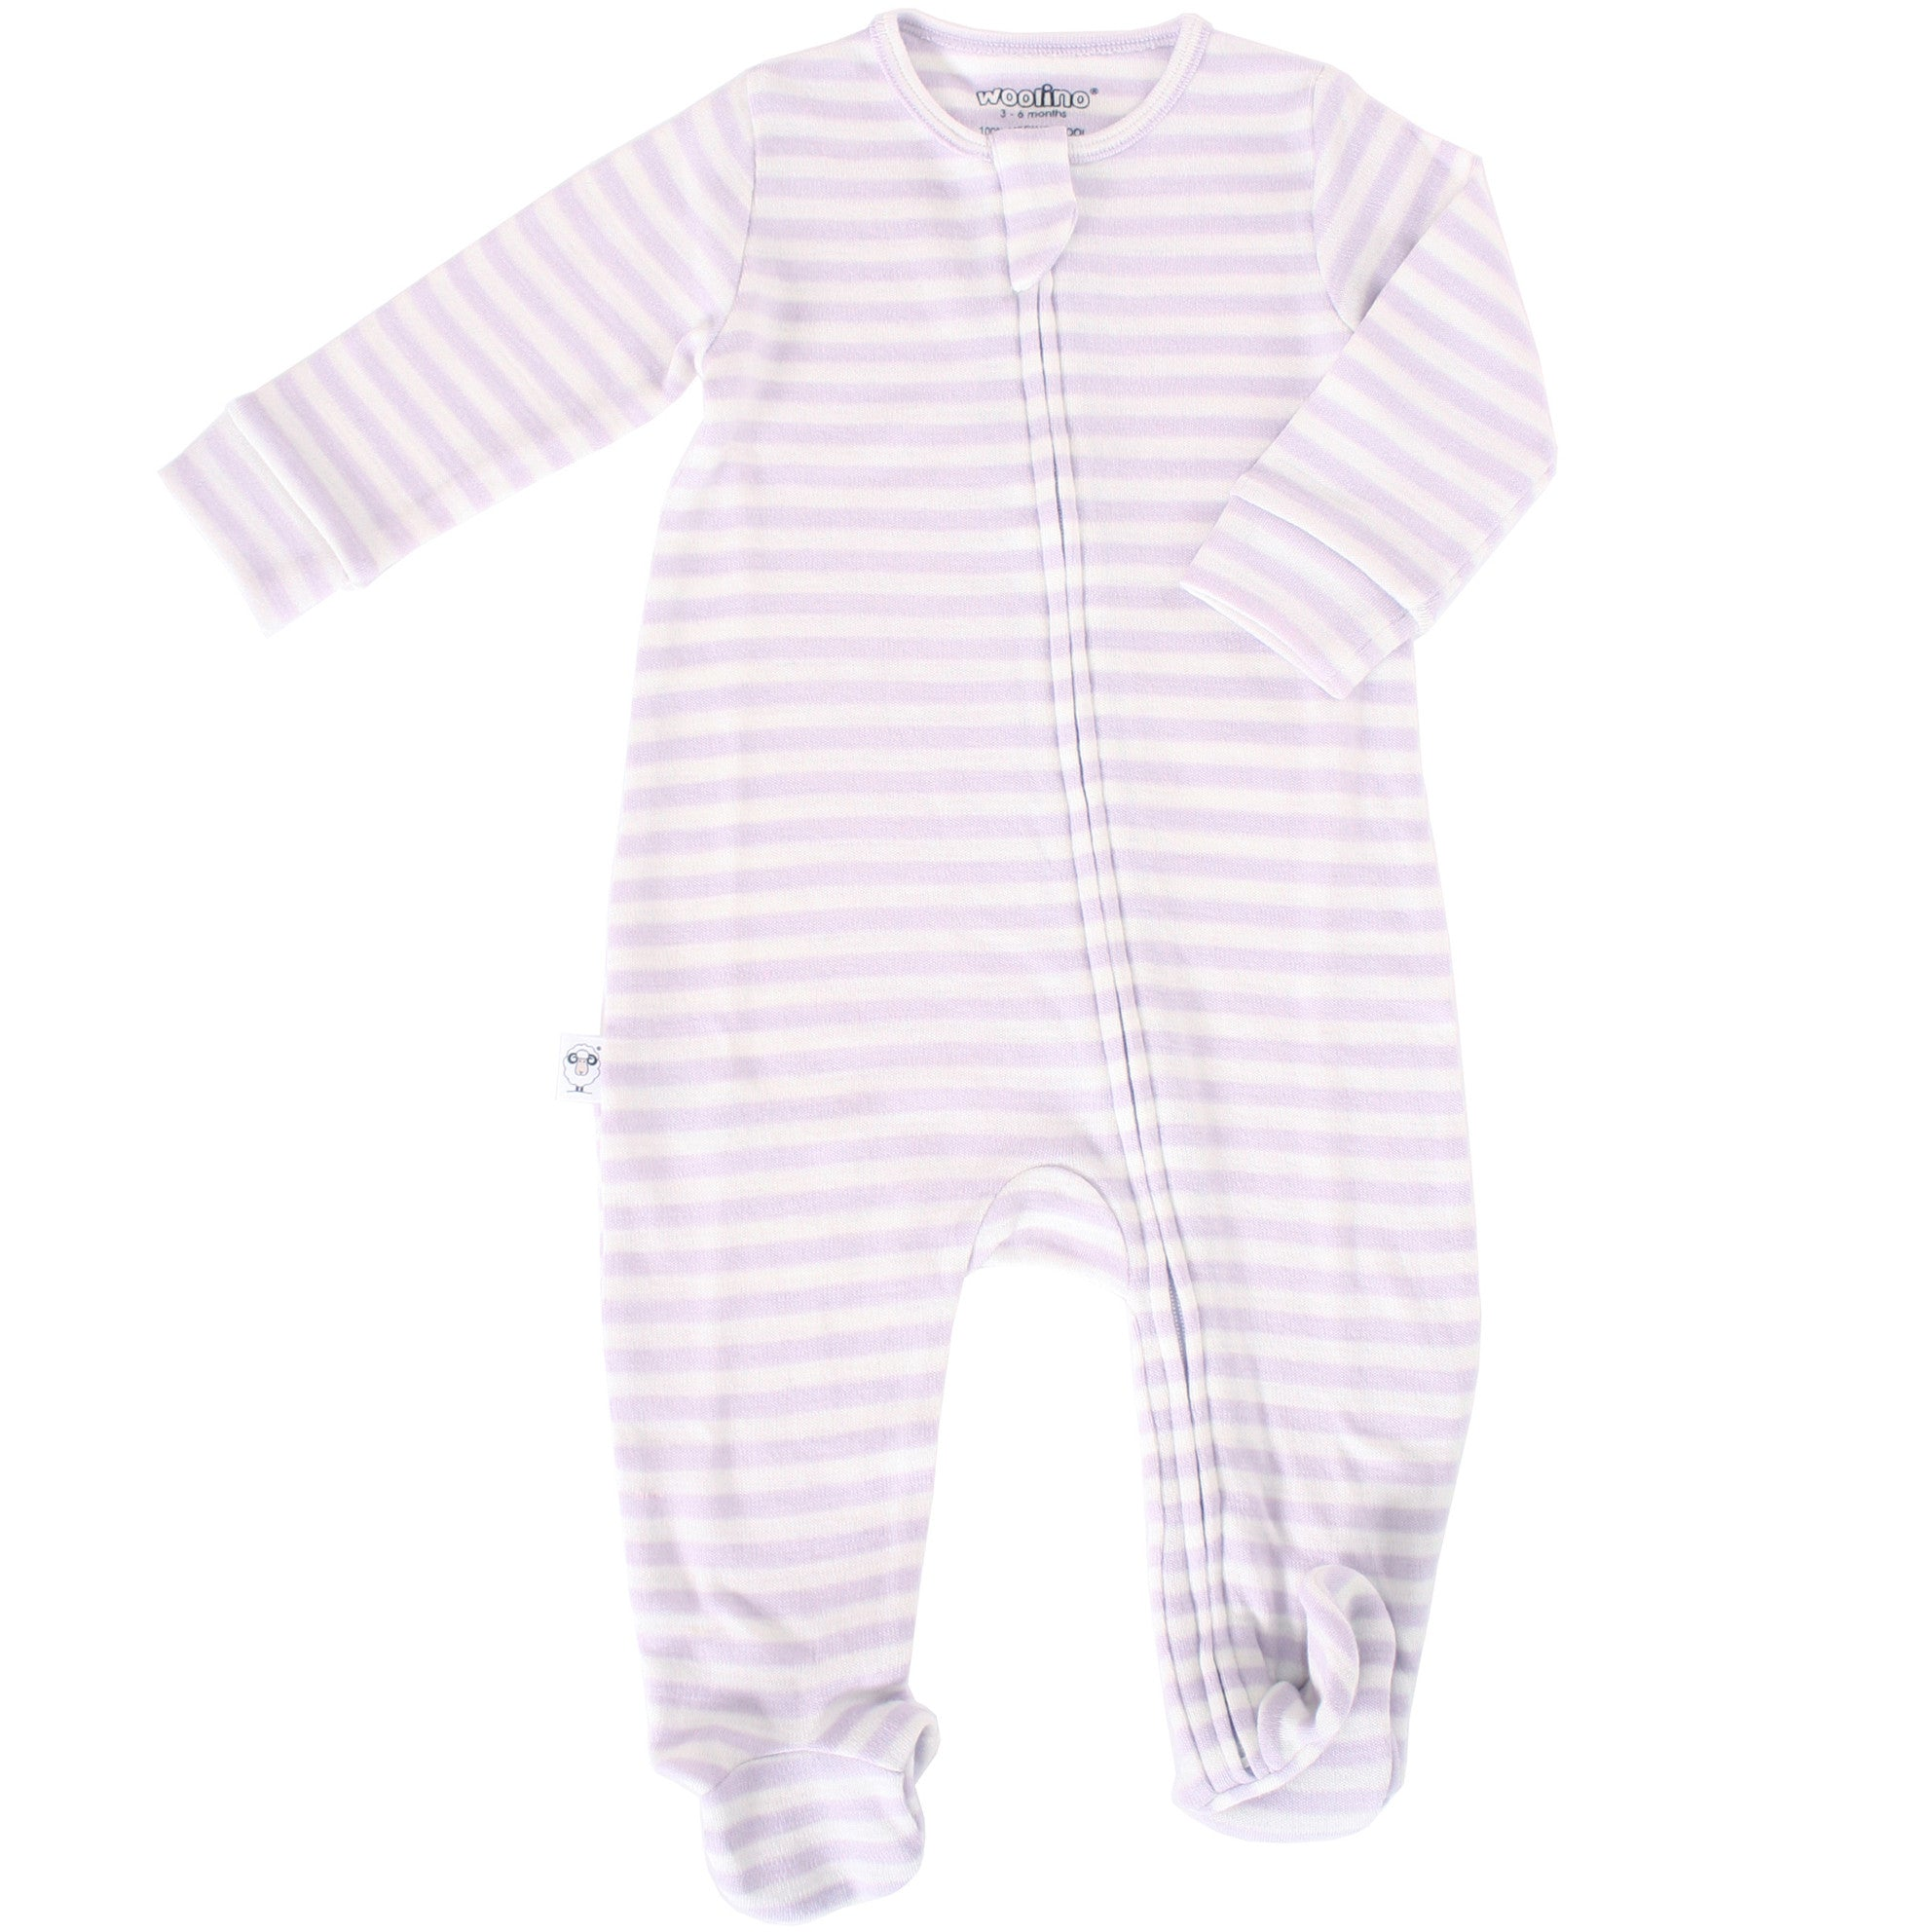 Footie Pajama Sleeper, Merino Wool, Lilac